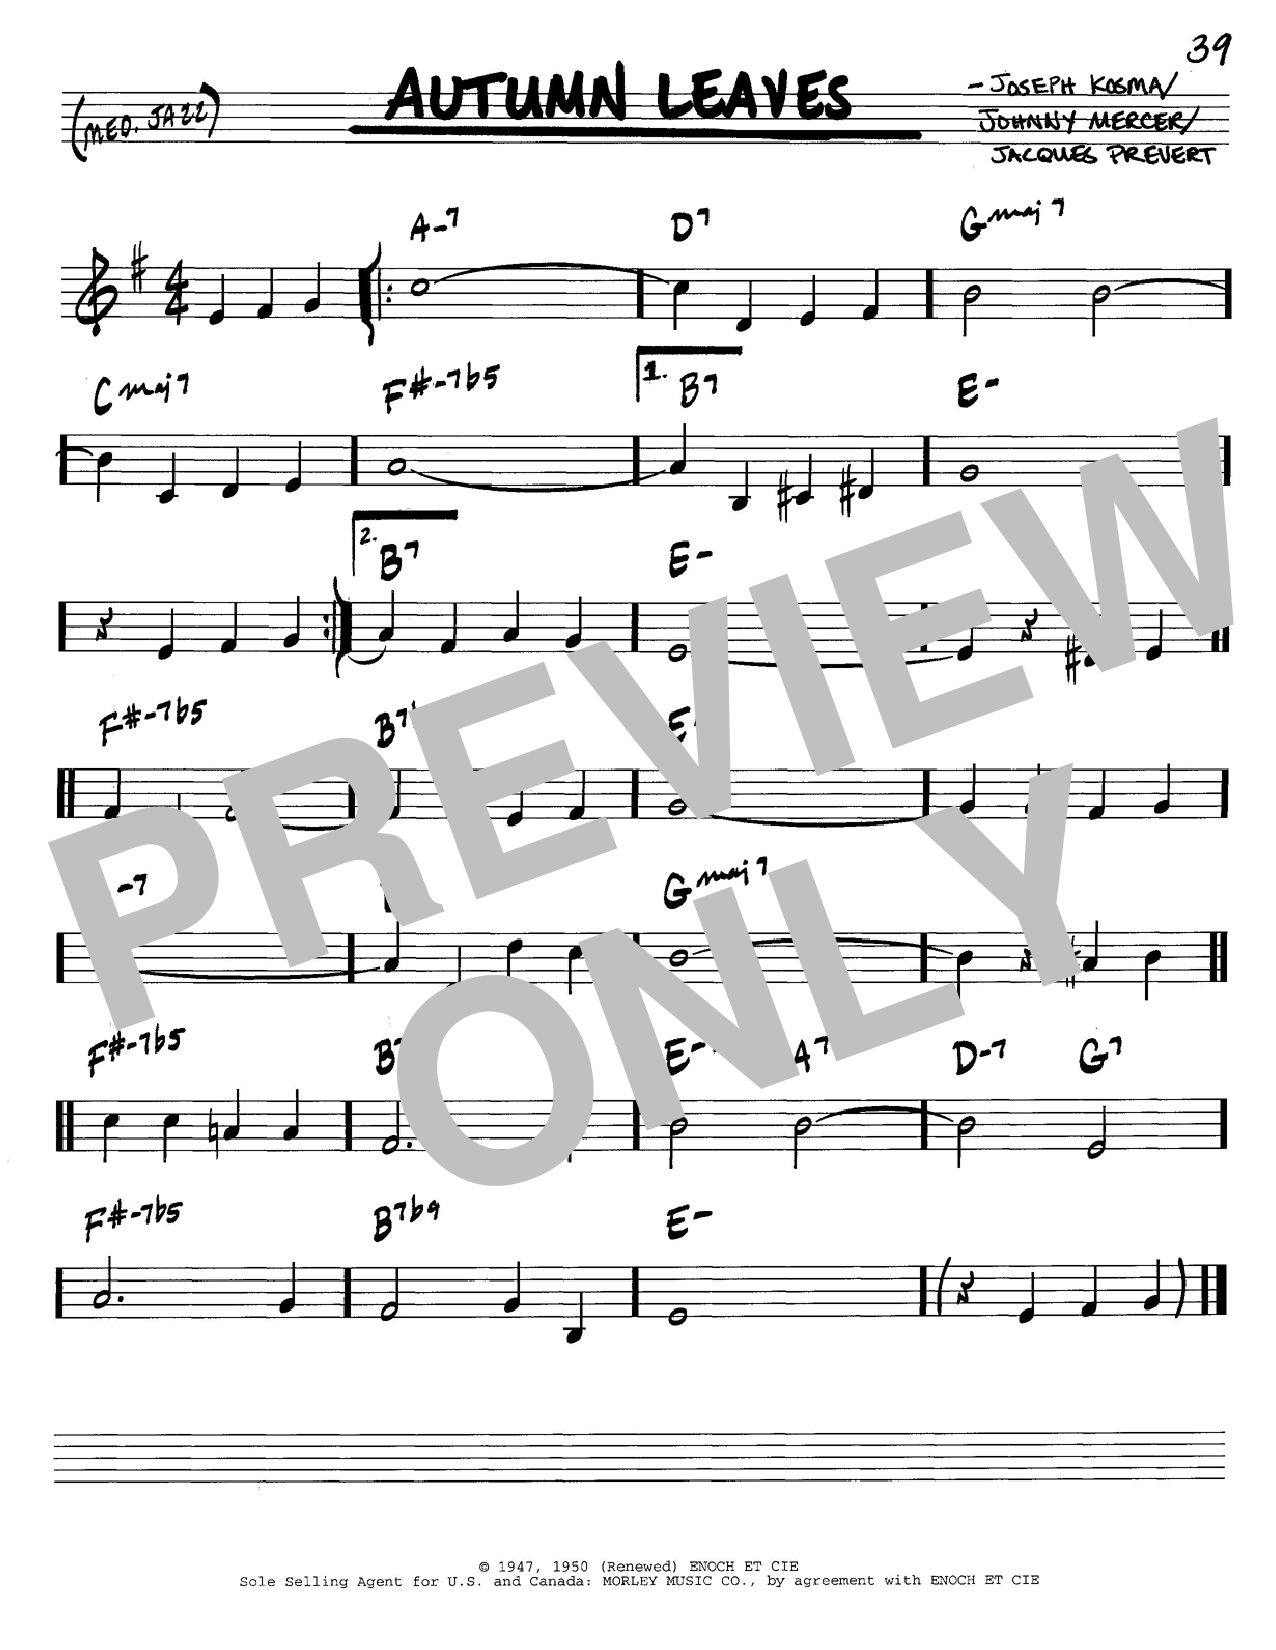 Johnny Mercer Autumn Leaves sheet music notes and chords. Download Printable PDF.